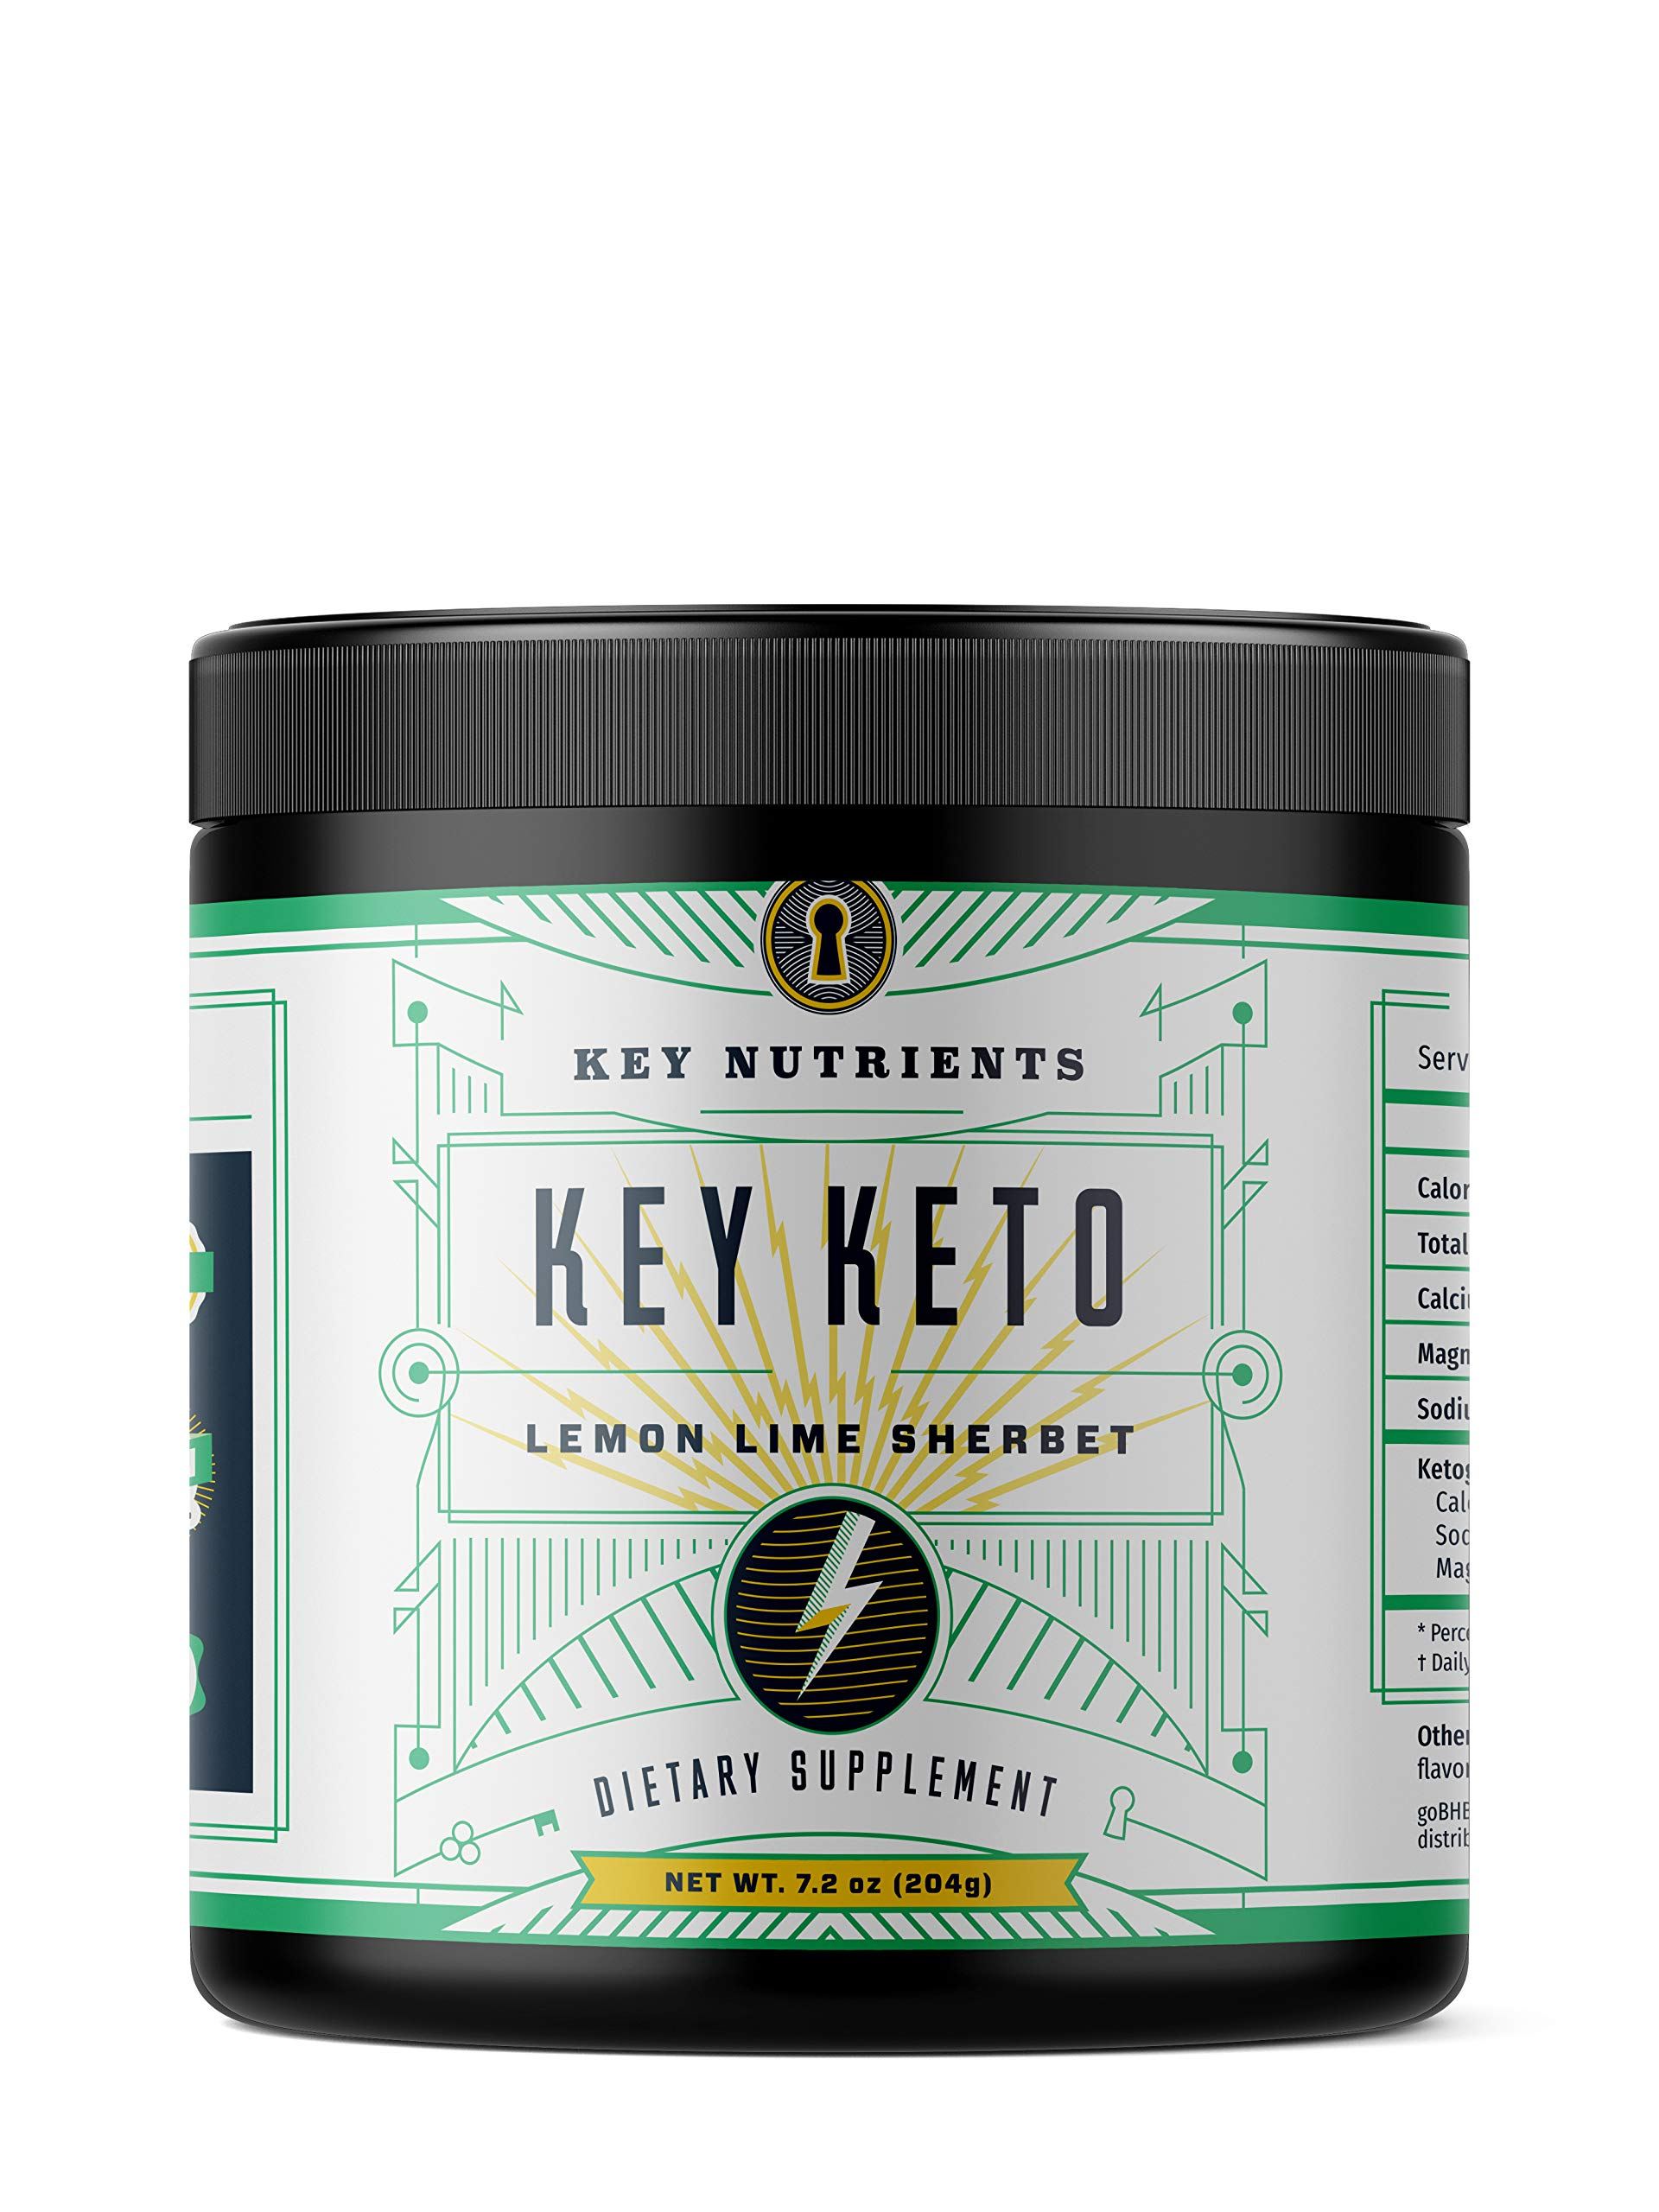 Exogenous Ketone Supplement, Key Keto: Patented BHB Salts (Beta-Hydroxybutyrate) - Formulated for Ketosis, to Burn Fat, Increase Energy and Focus, Supports a Keto Diet. Lemon Lime Sherbet 15 Servings